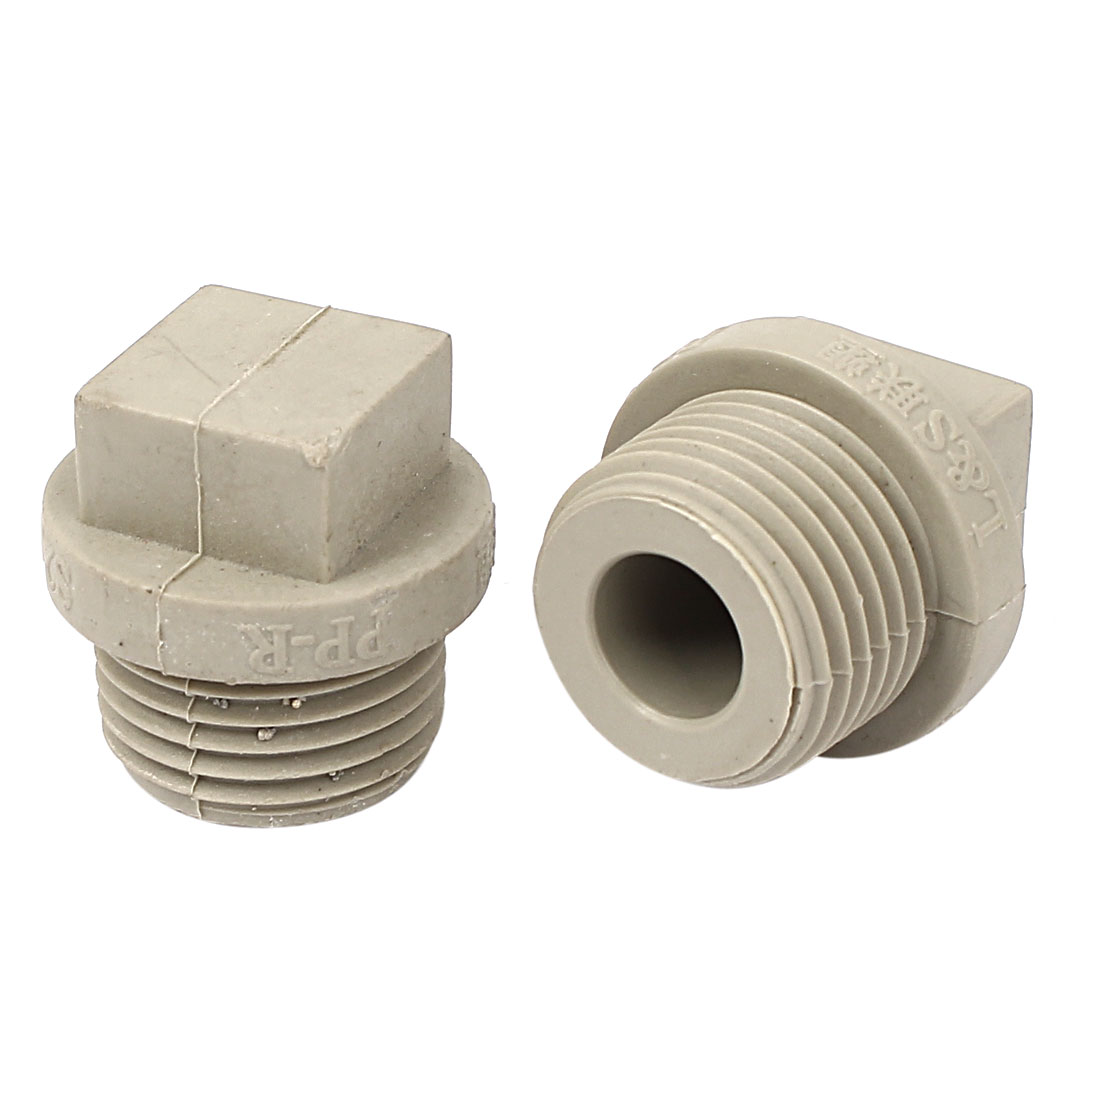 1/2BSP Male Thread PPR Square Head Pipe Fitting Connectors Gray 2pcs